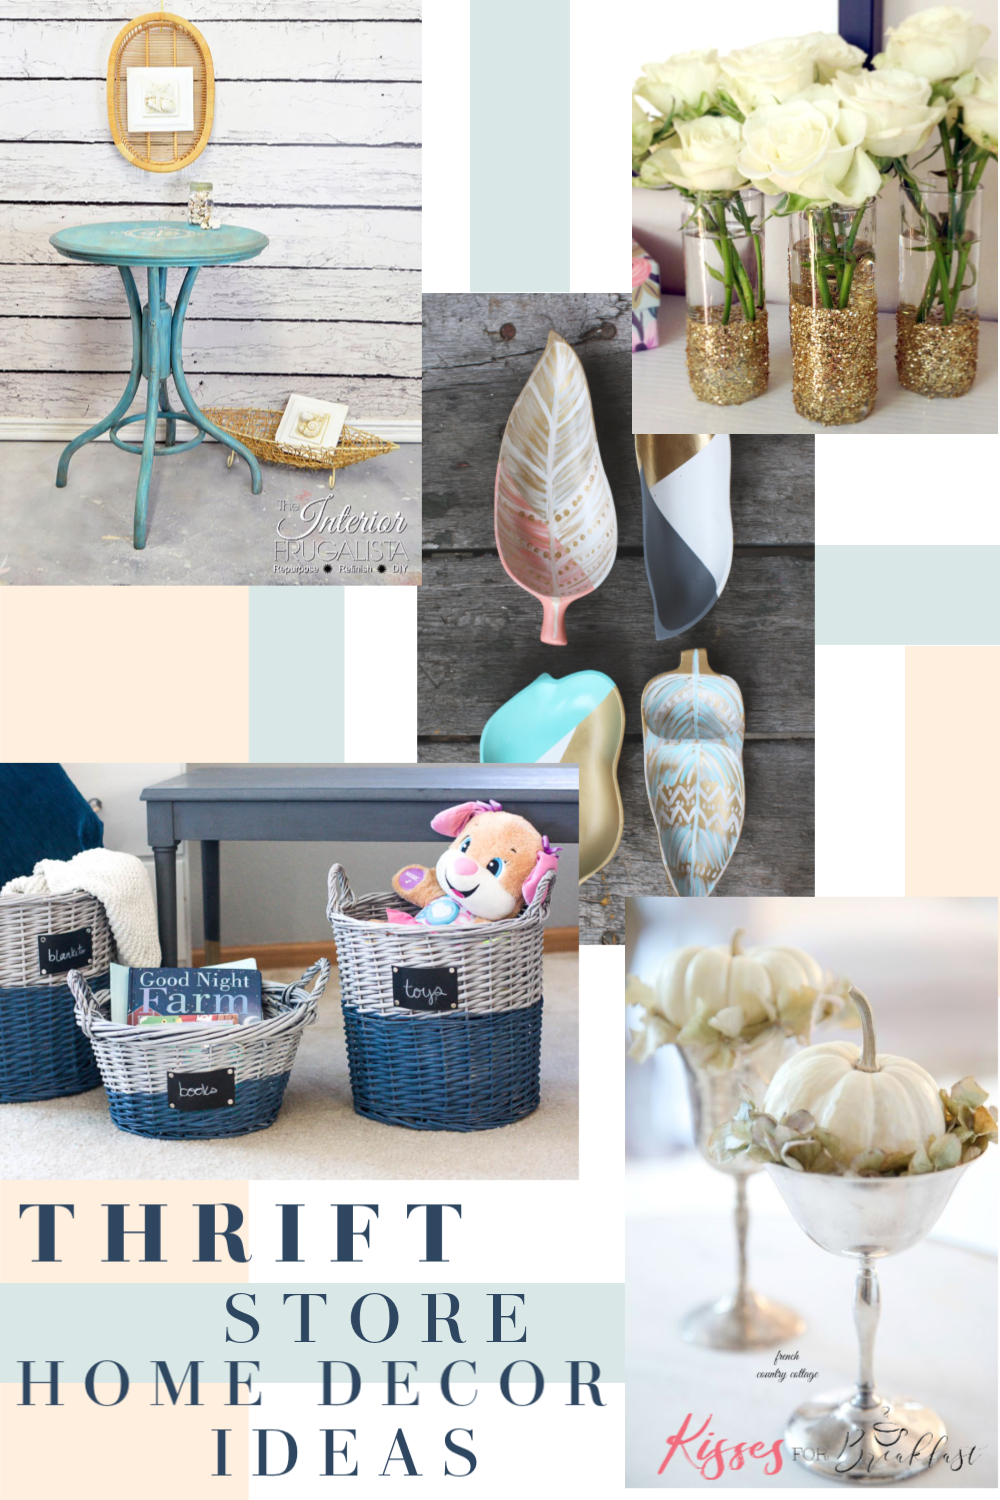 Thrifty Home Decor Ideas To Save Money In 2020 Home Decor